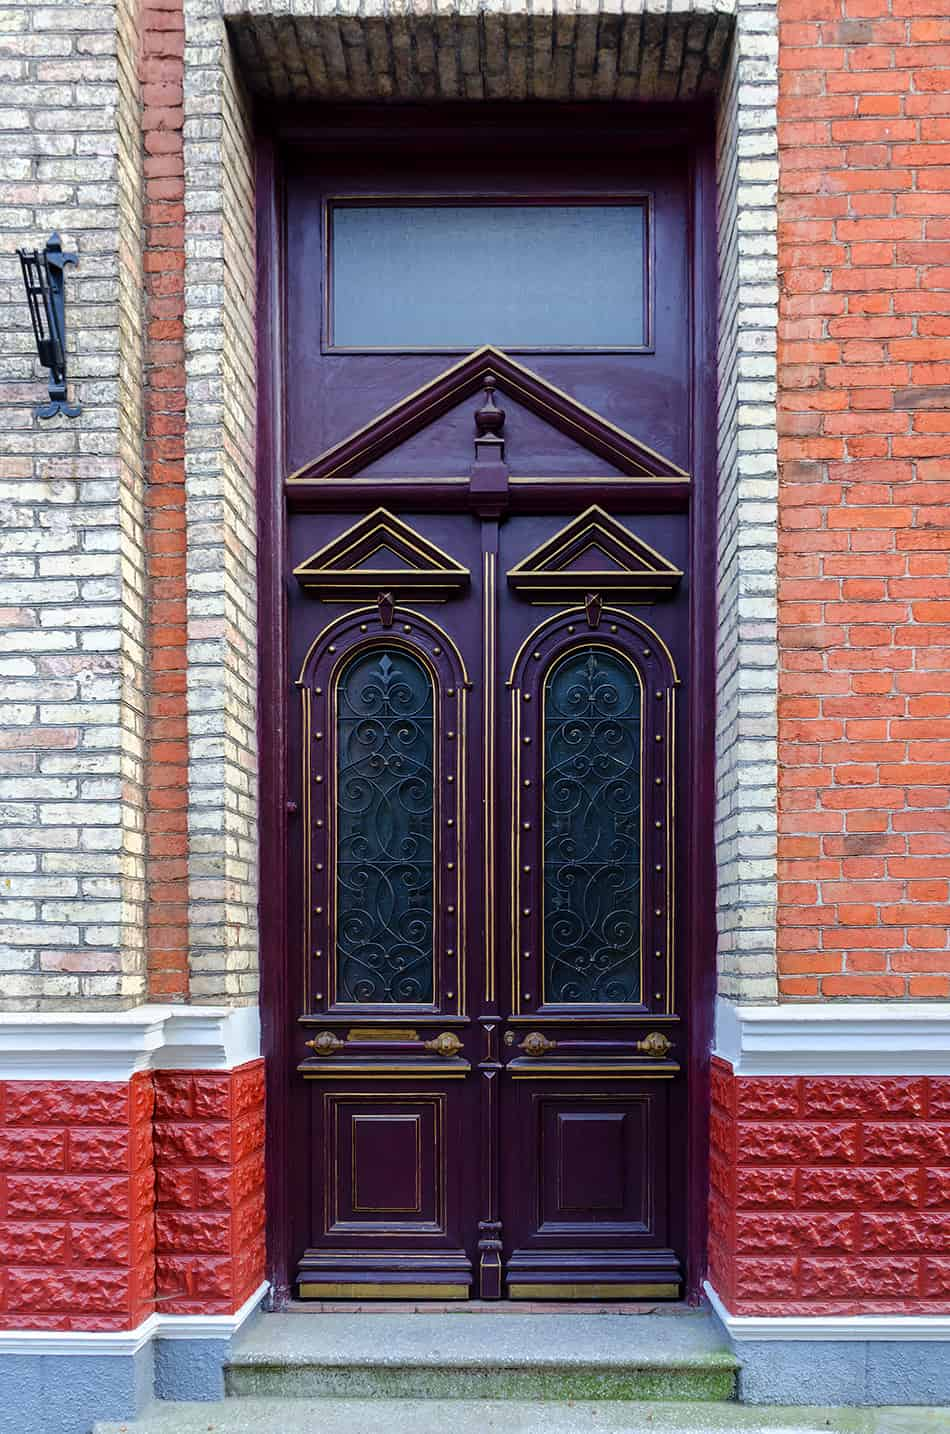 A Tall Order with Stained Glass